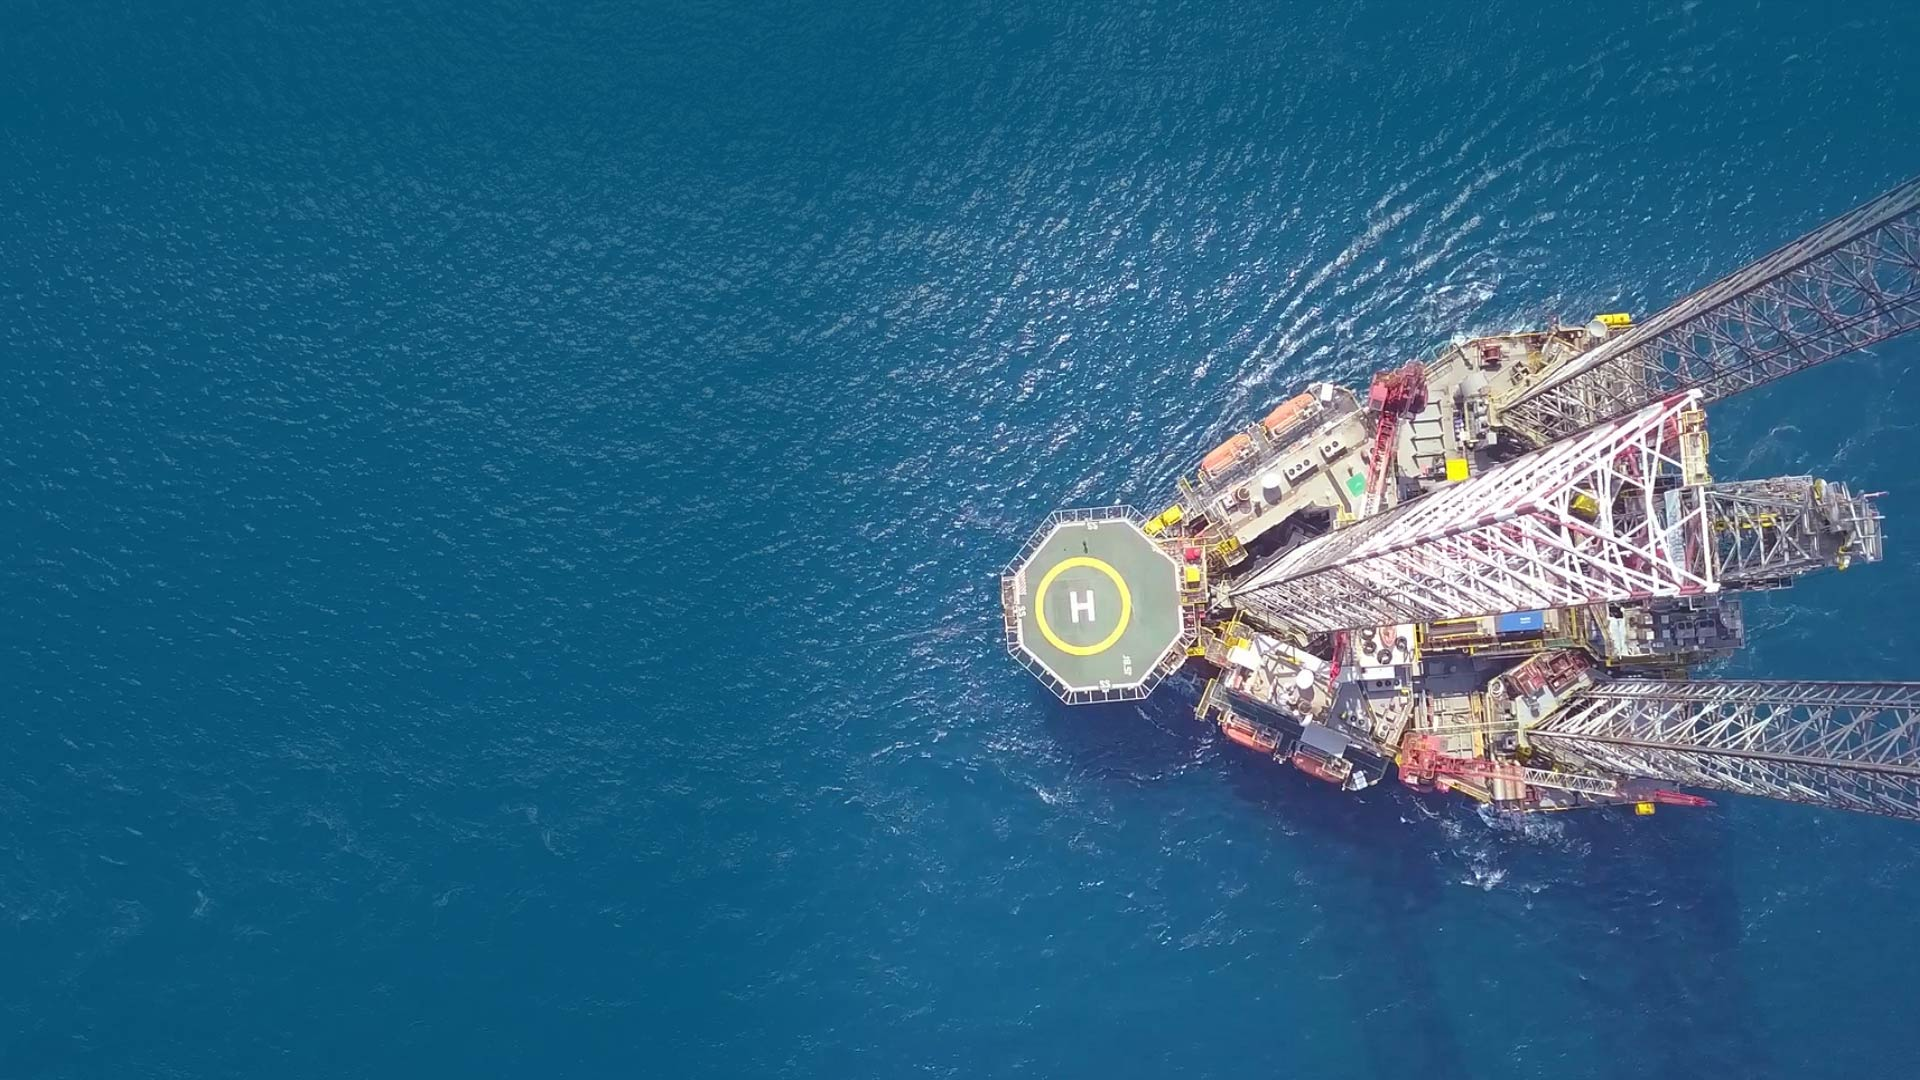 Aerial view of offshore platform